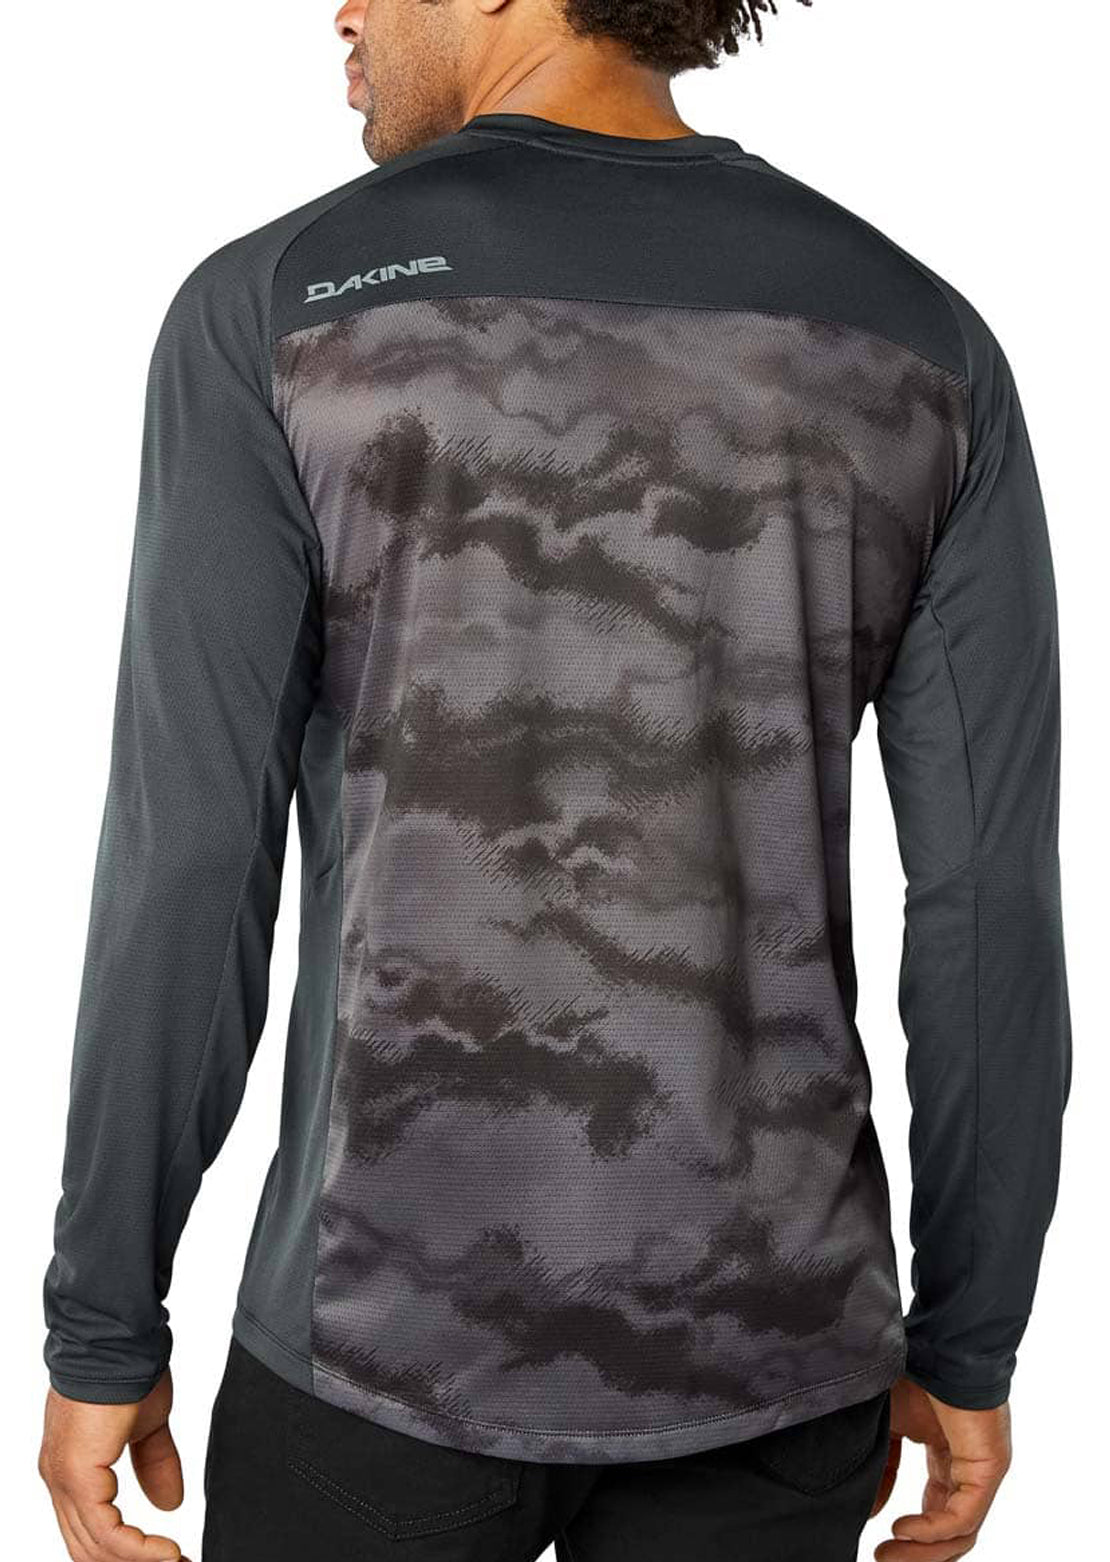 Dakine Men's Syncline Longsleeve Mountain Bike Jersey Black/Dark Ashcroft